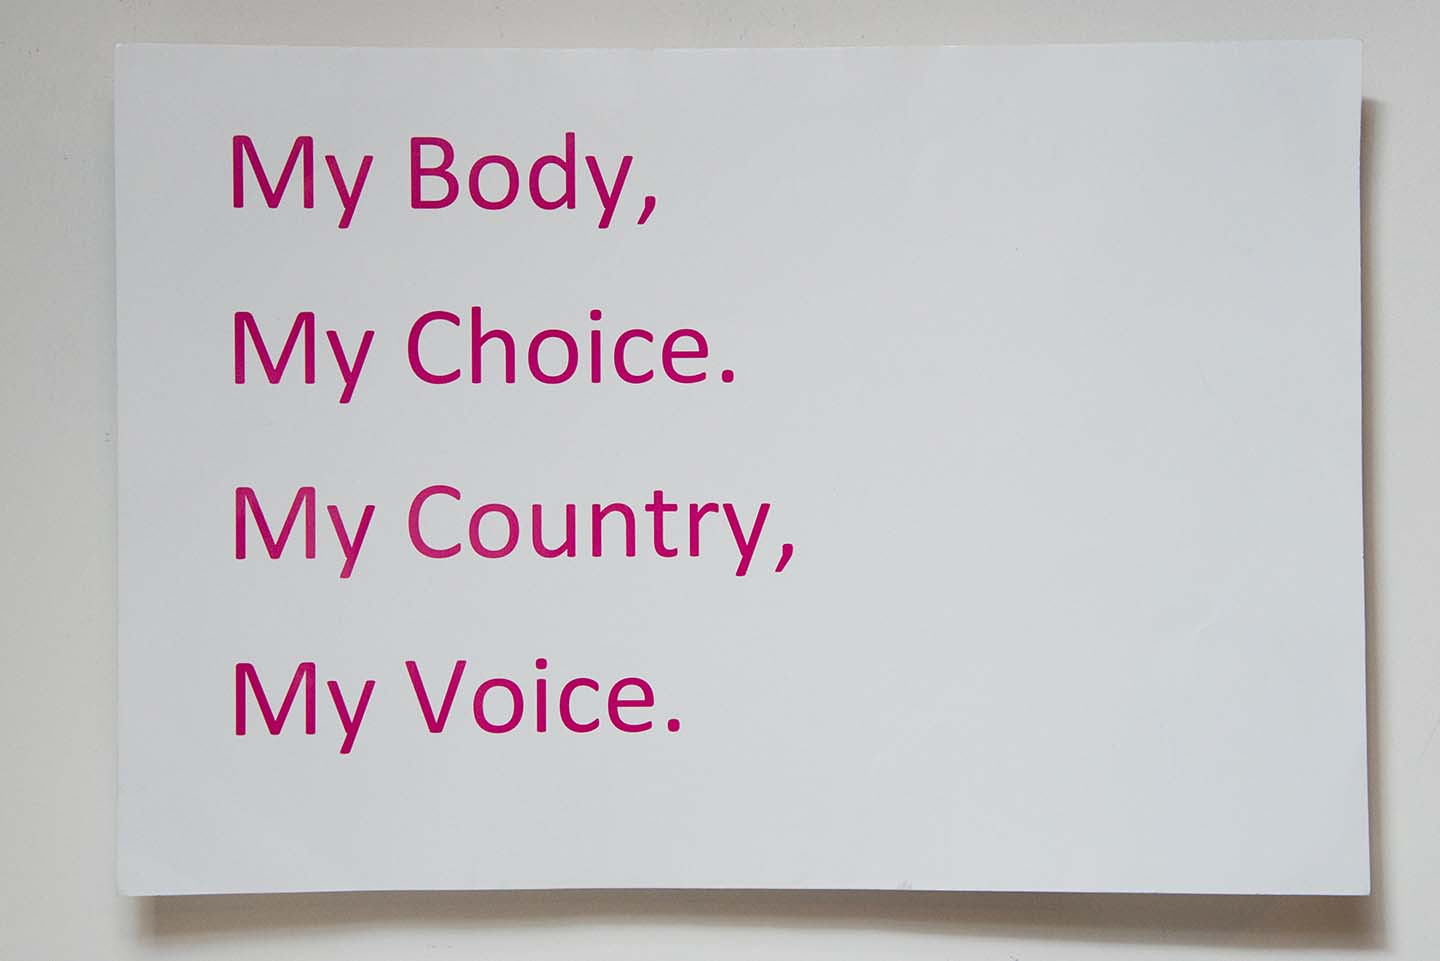 My Body My Choice My Country My Voice